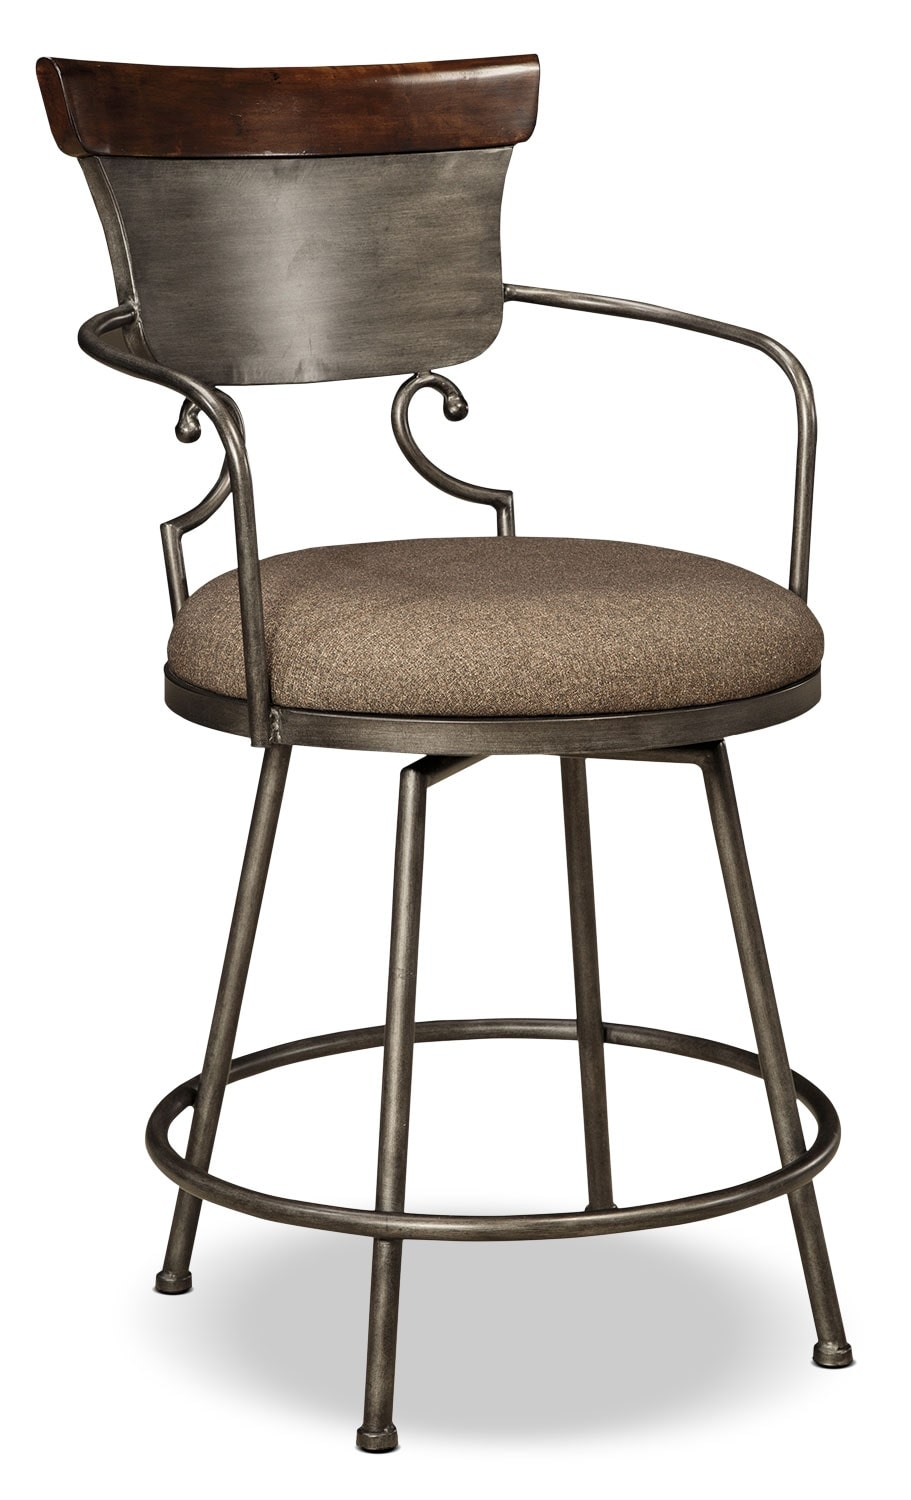 Dining Room Furniture - Moriann Metal Counter-Height Stool - Dark Brown